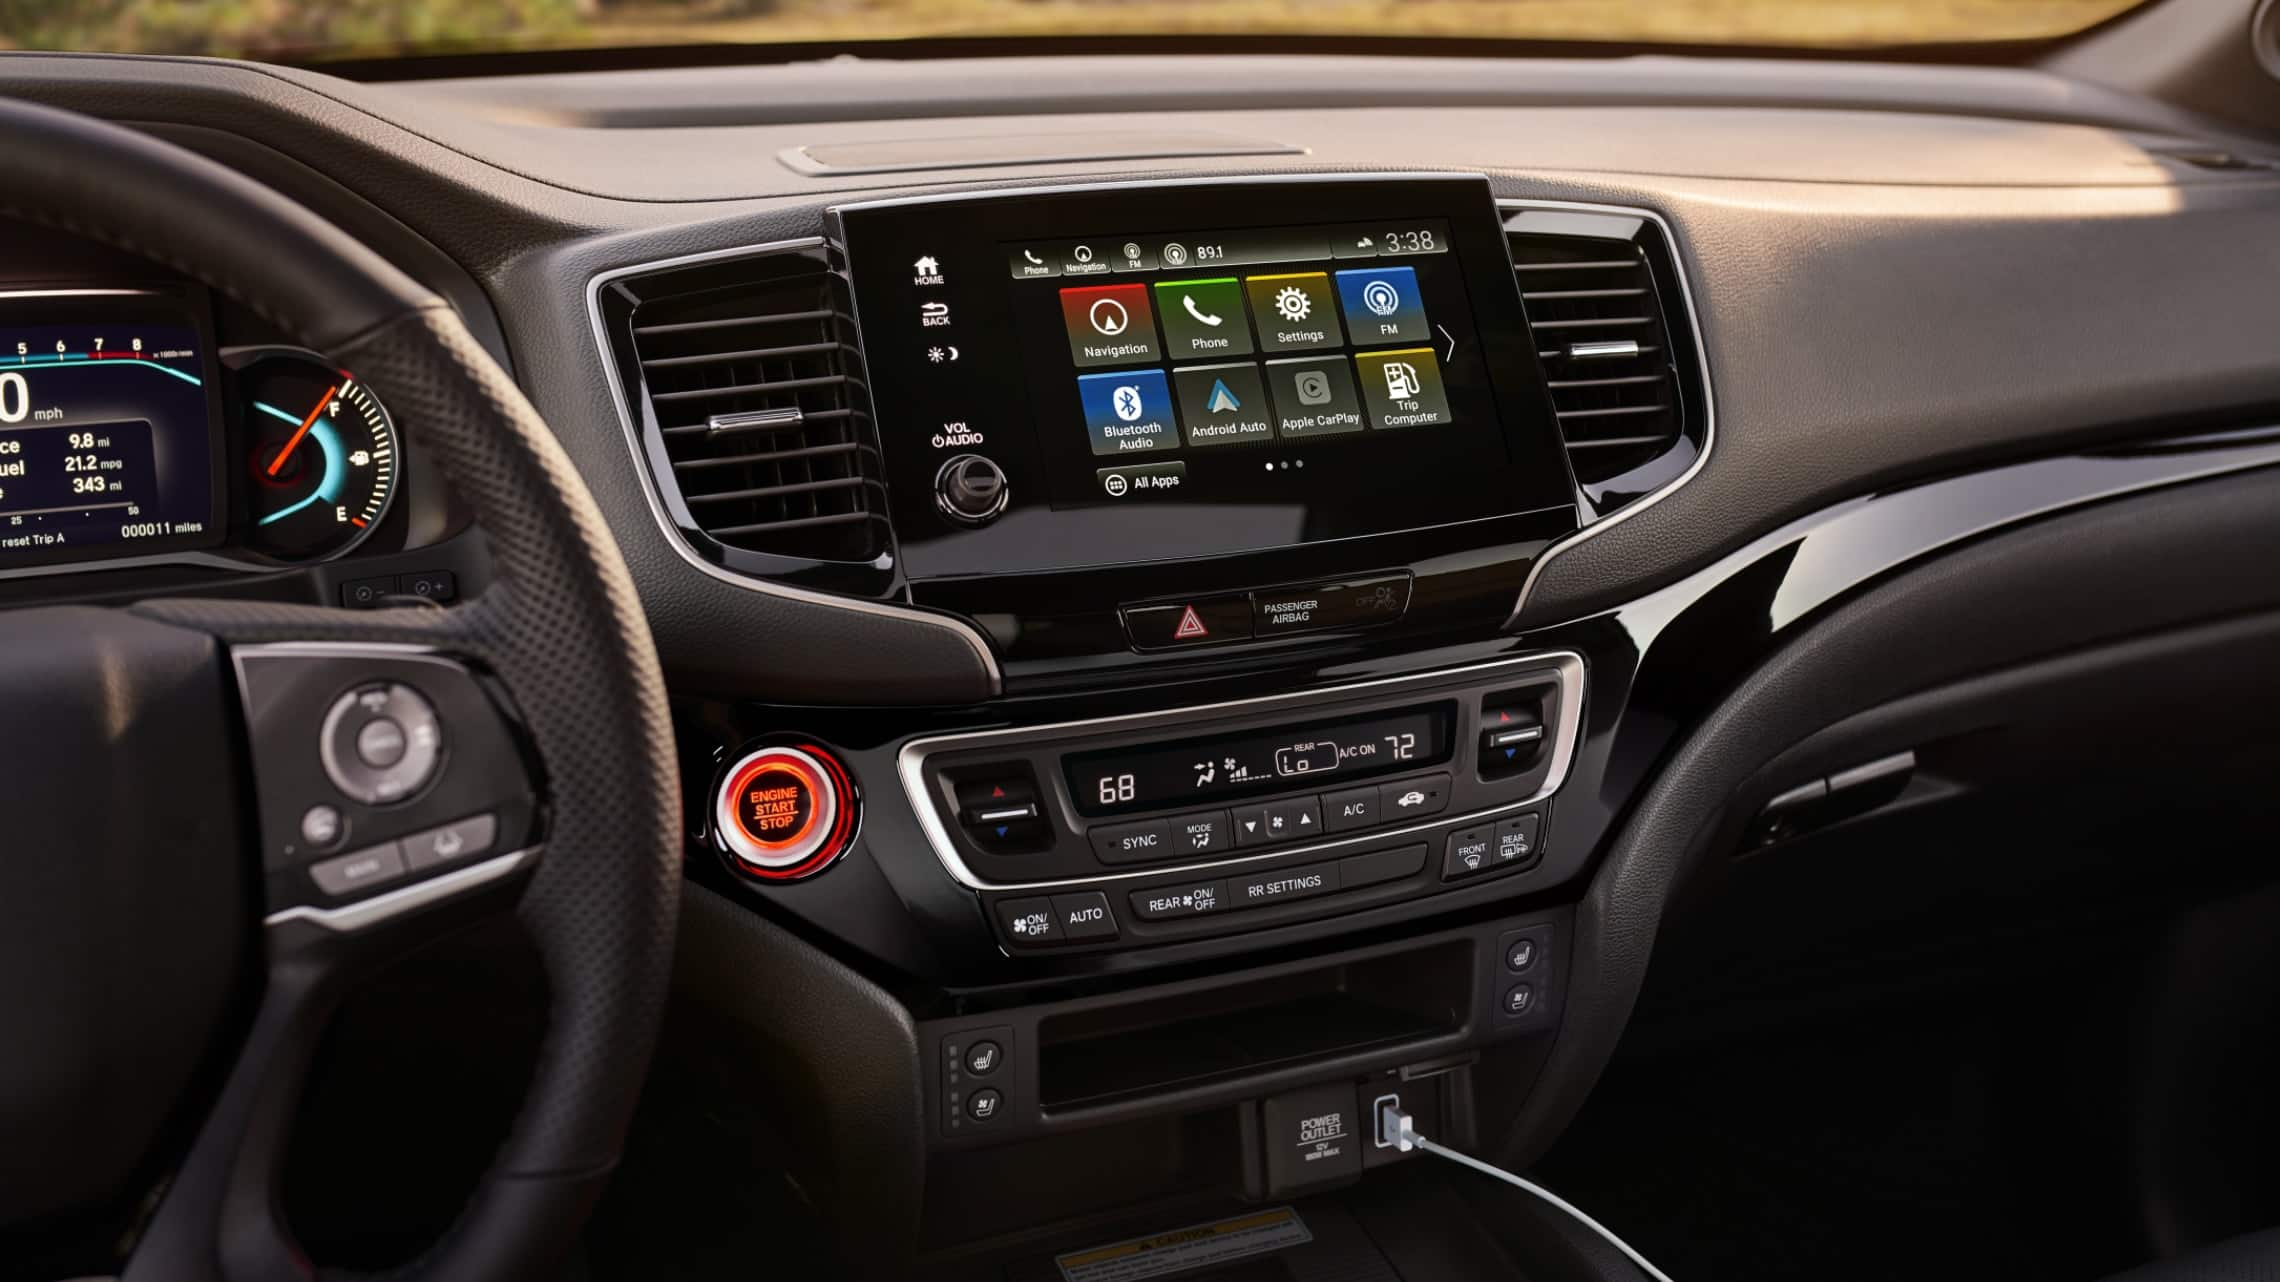 Display Audio touch-screen in the 2020 Honda Passport Elite. Plays animation.